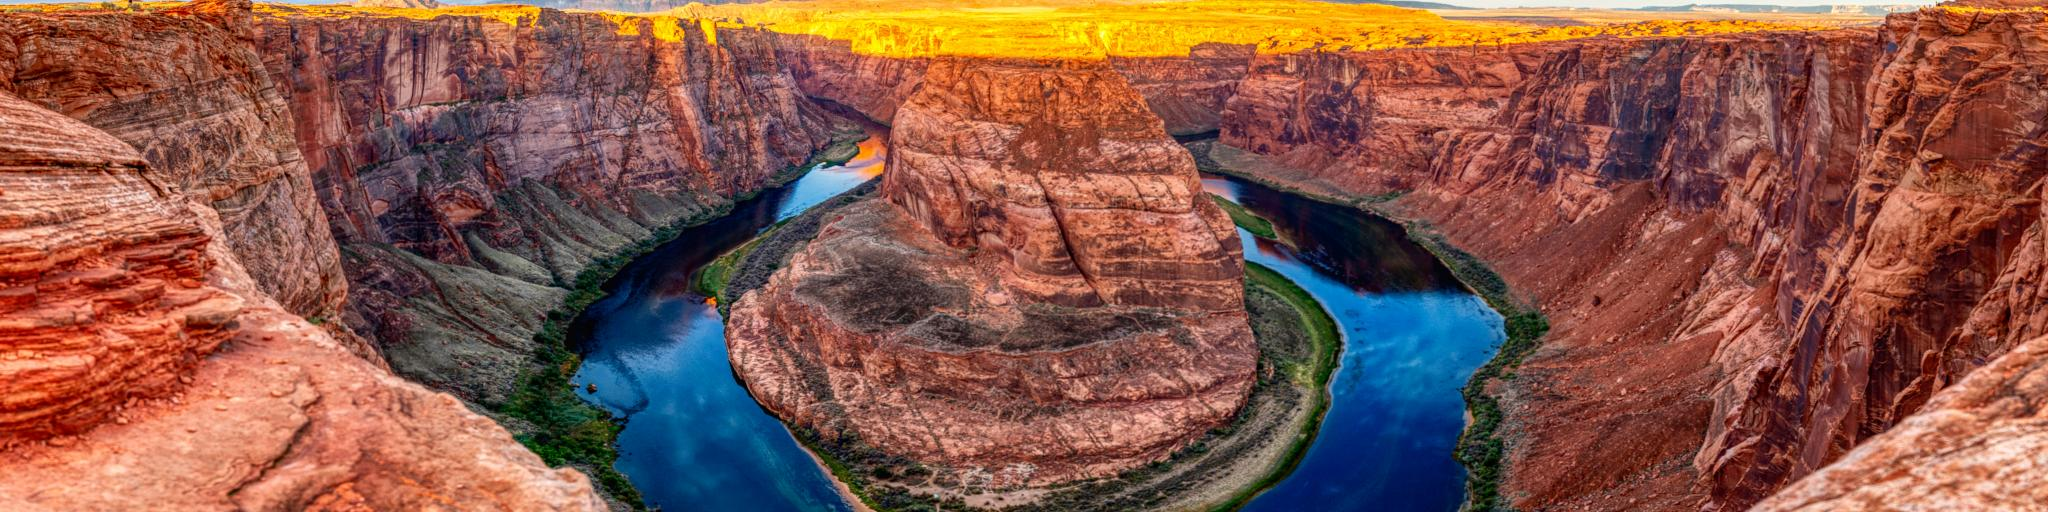 The light of sunrise illuminating Horseshoe Bend, made of Navajo sandstones with clear blue water running along the Grand Canyon